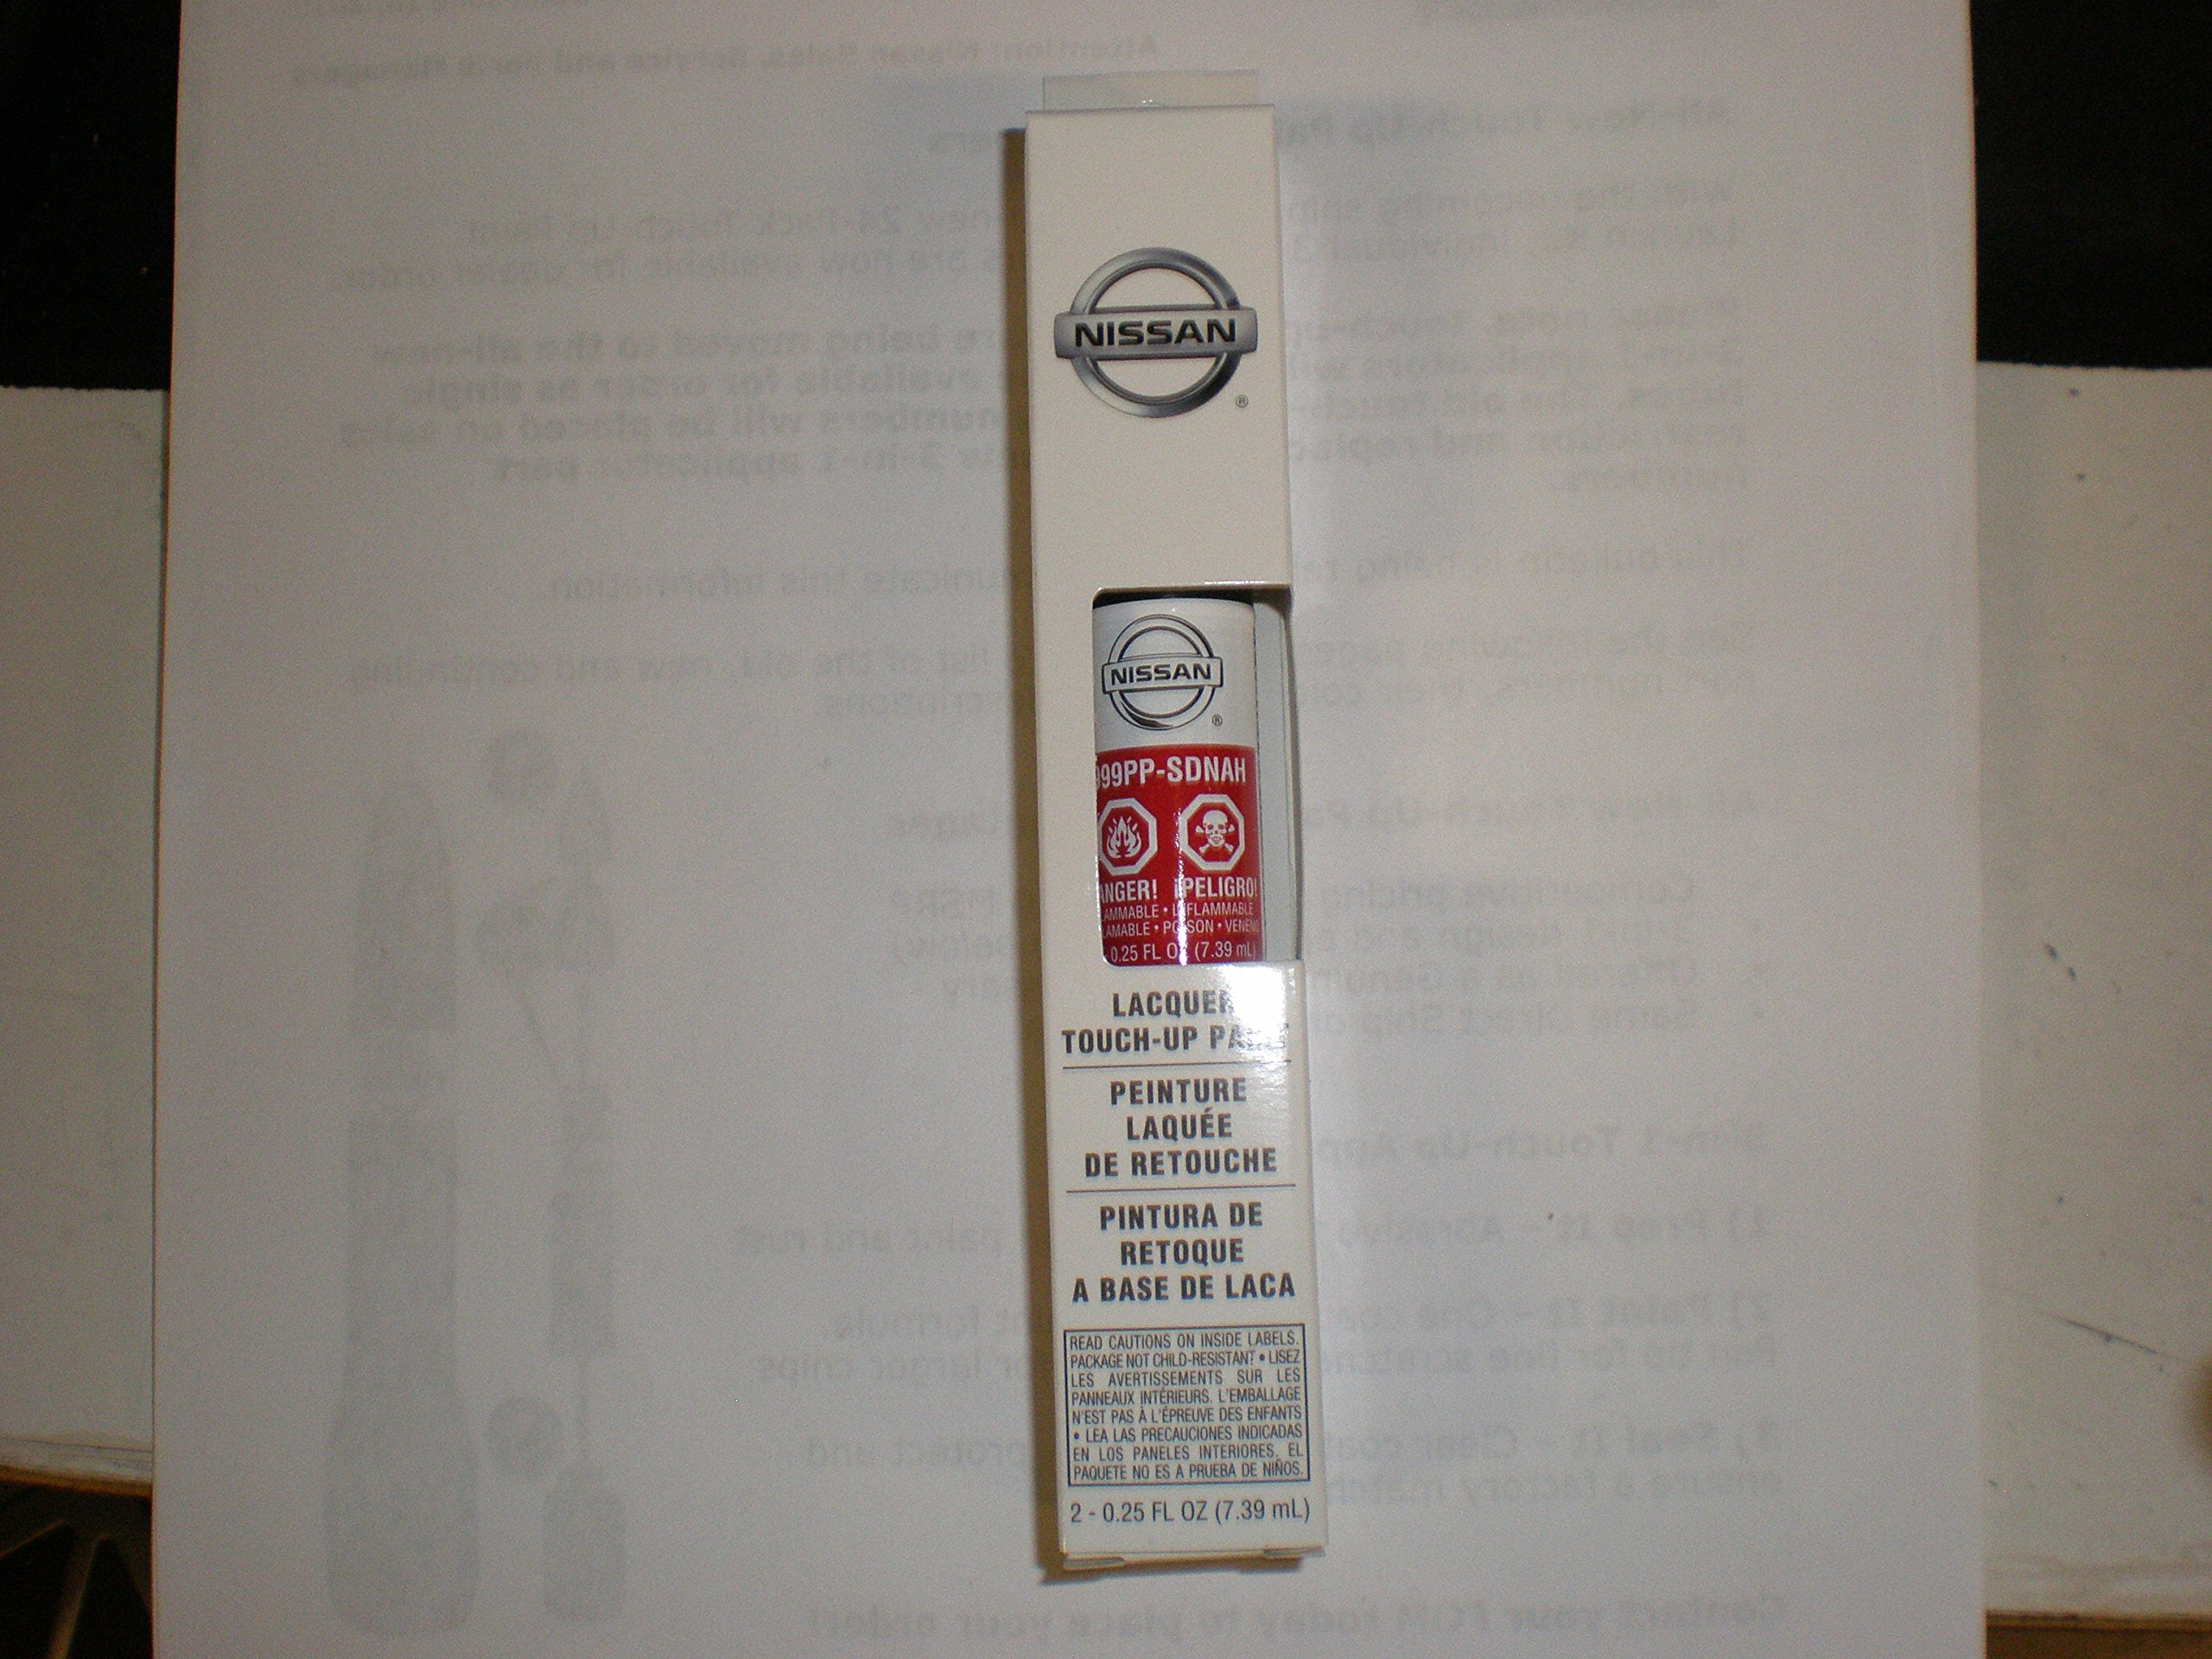 Nissan Touch up Paint .5oz 3-in-1 Applicator (NAH Cayenne Red)